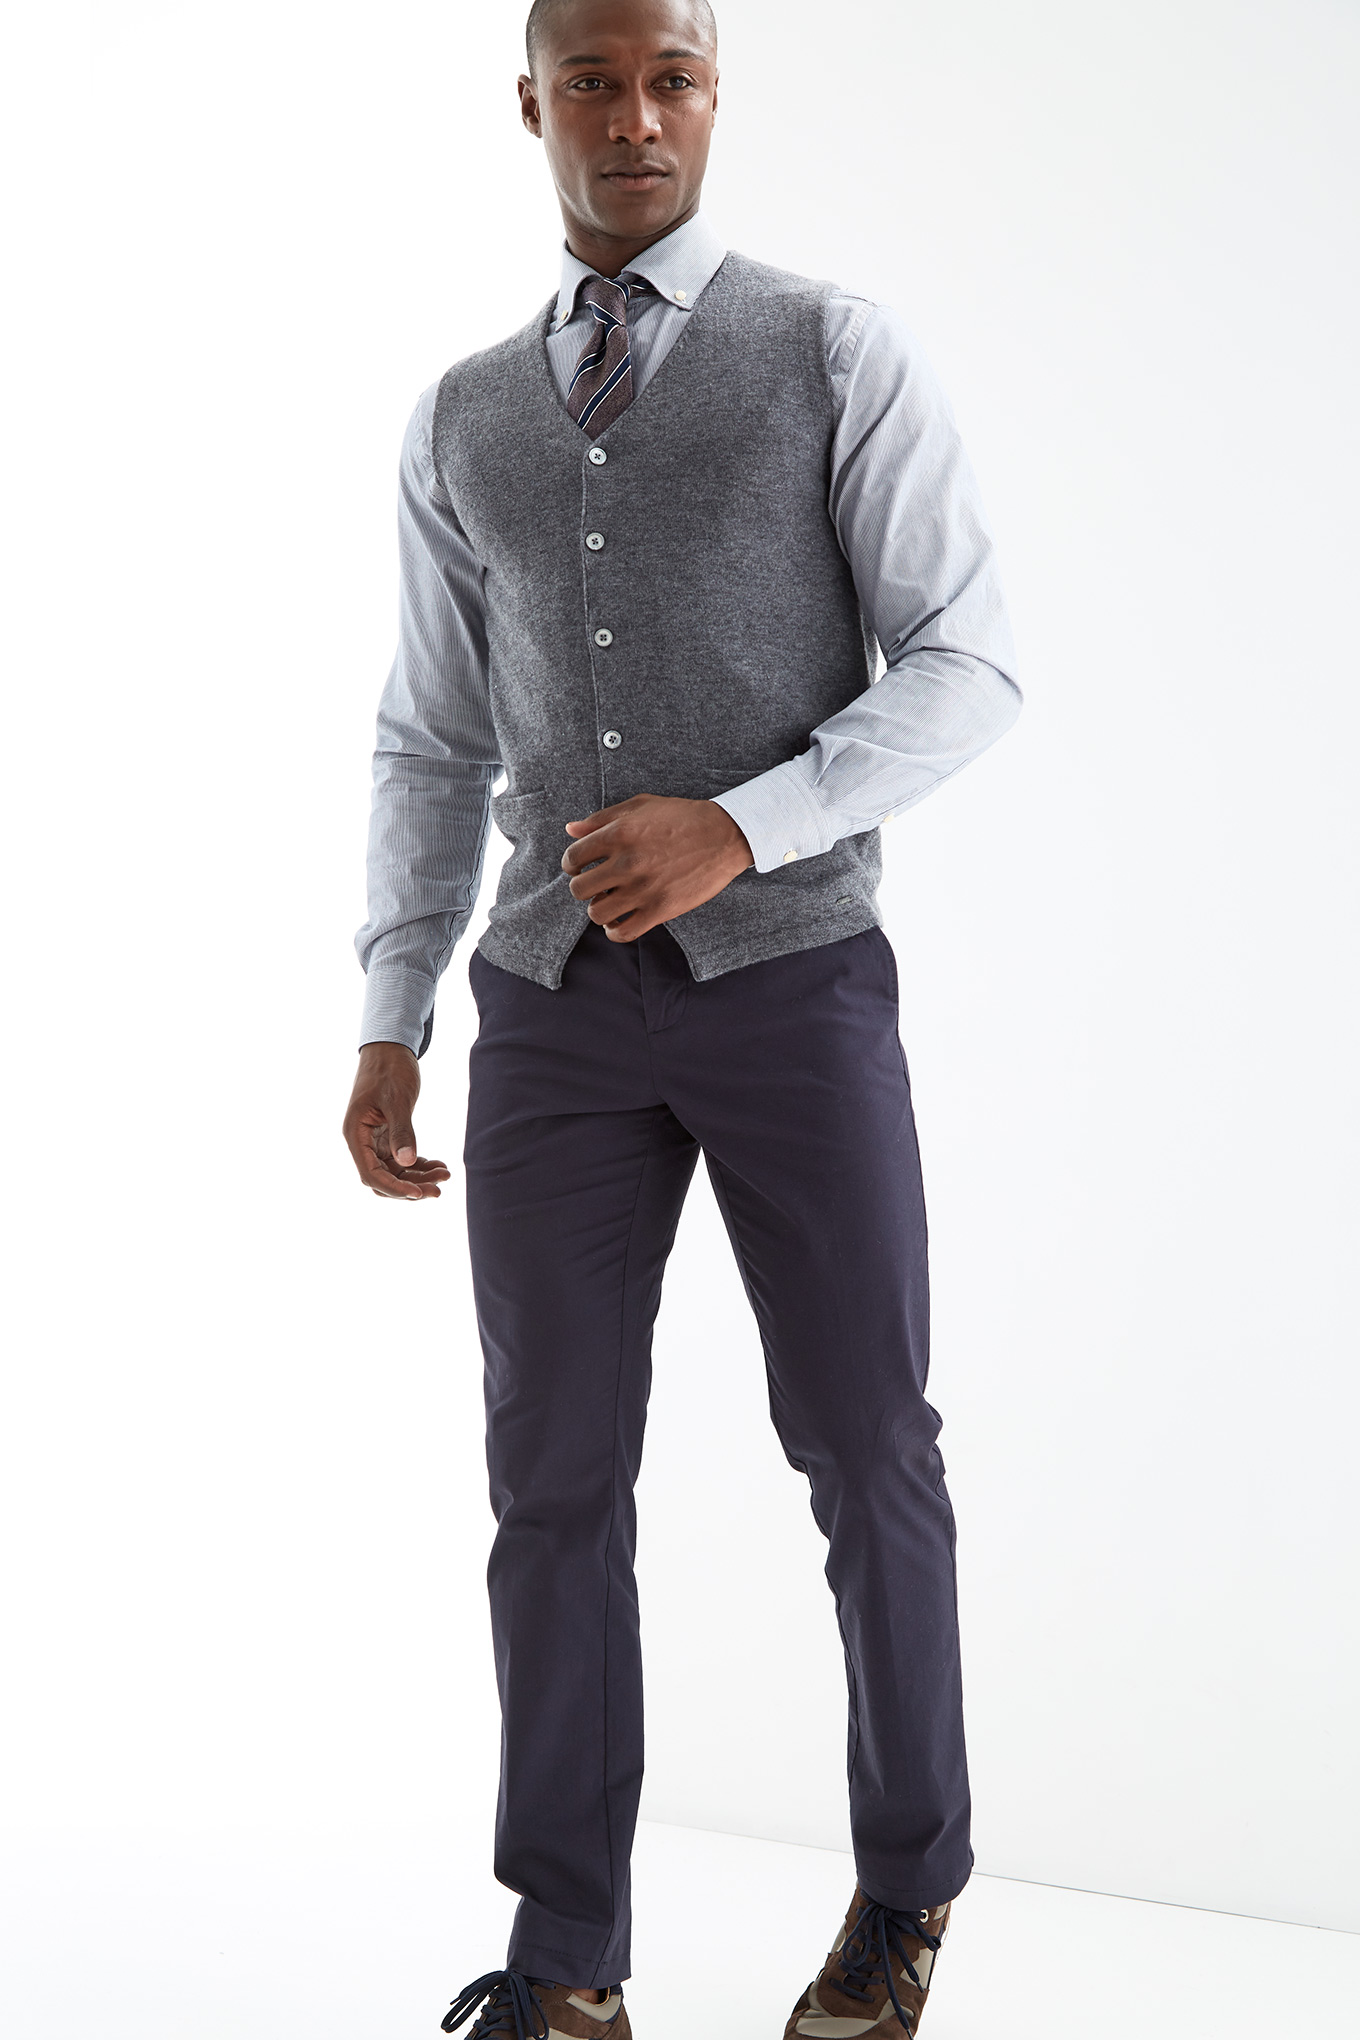 Waist Coat Sweater Dark Grey Sport Man